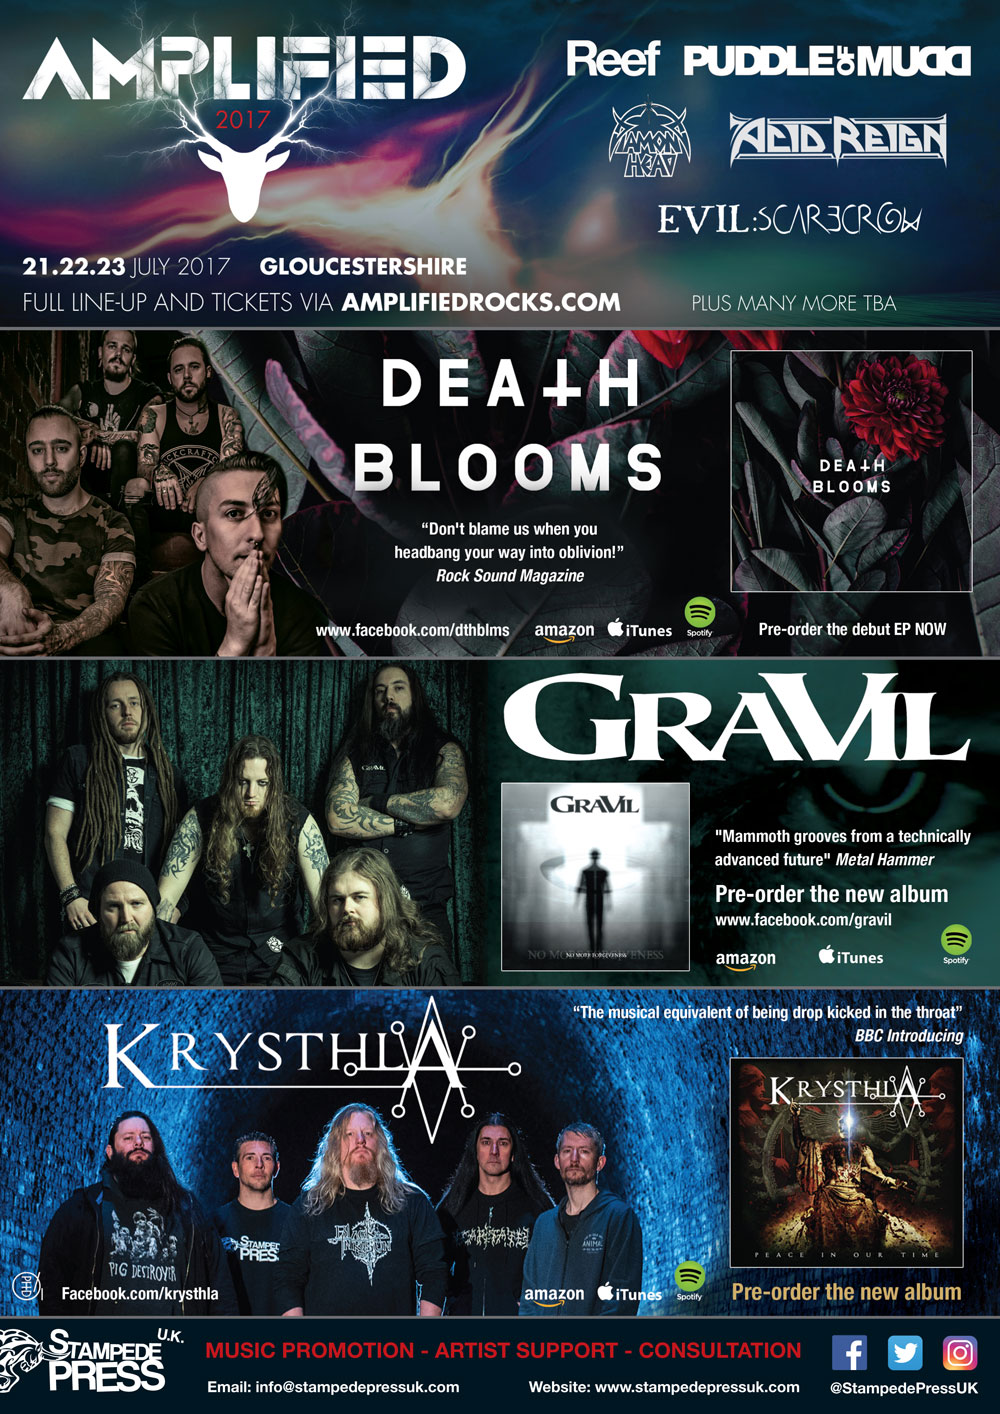 Stampede-Press_Amplified-Festival_Death-Blooms_GraVIL_Krysthla_Advert_Metal-Hammer